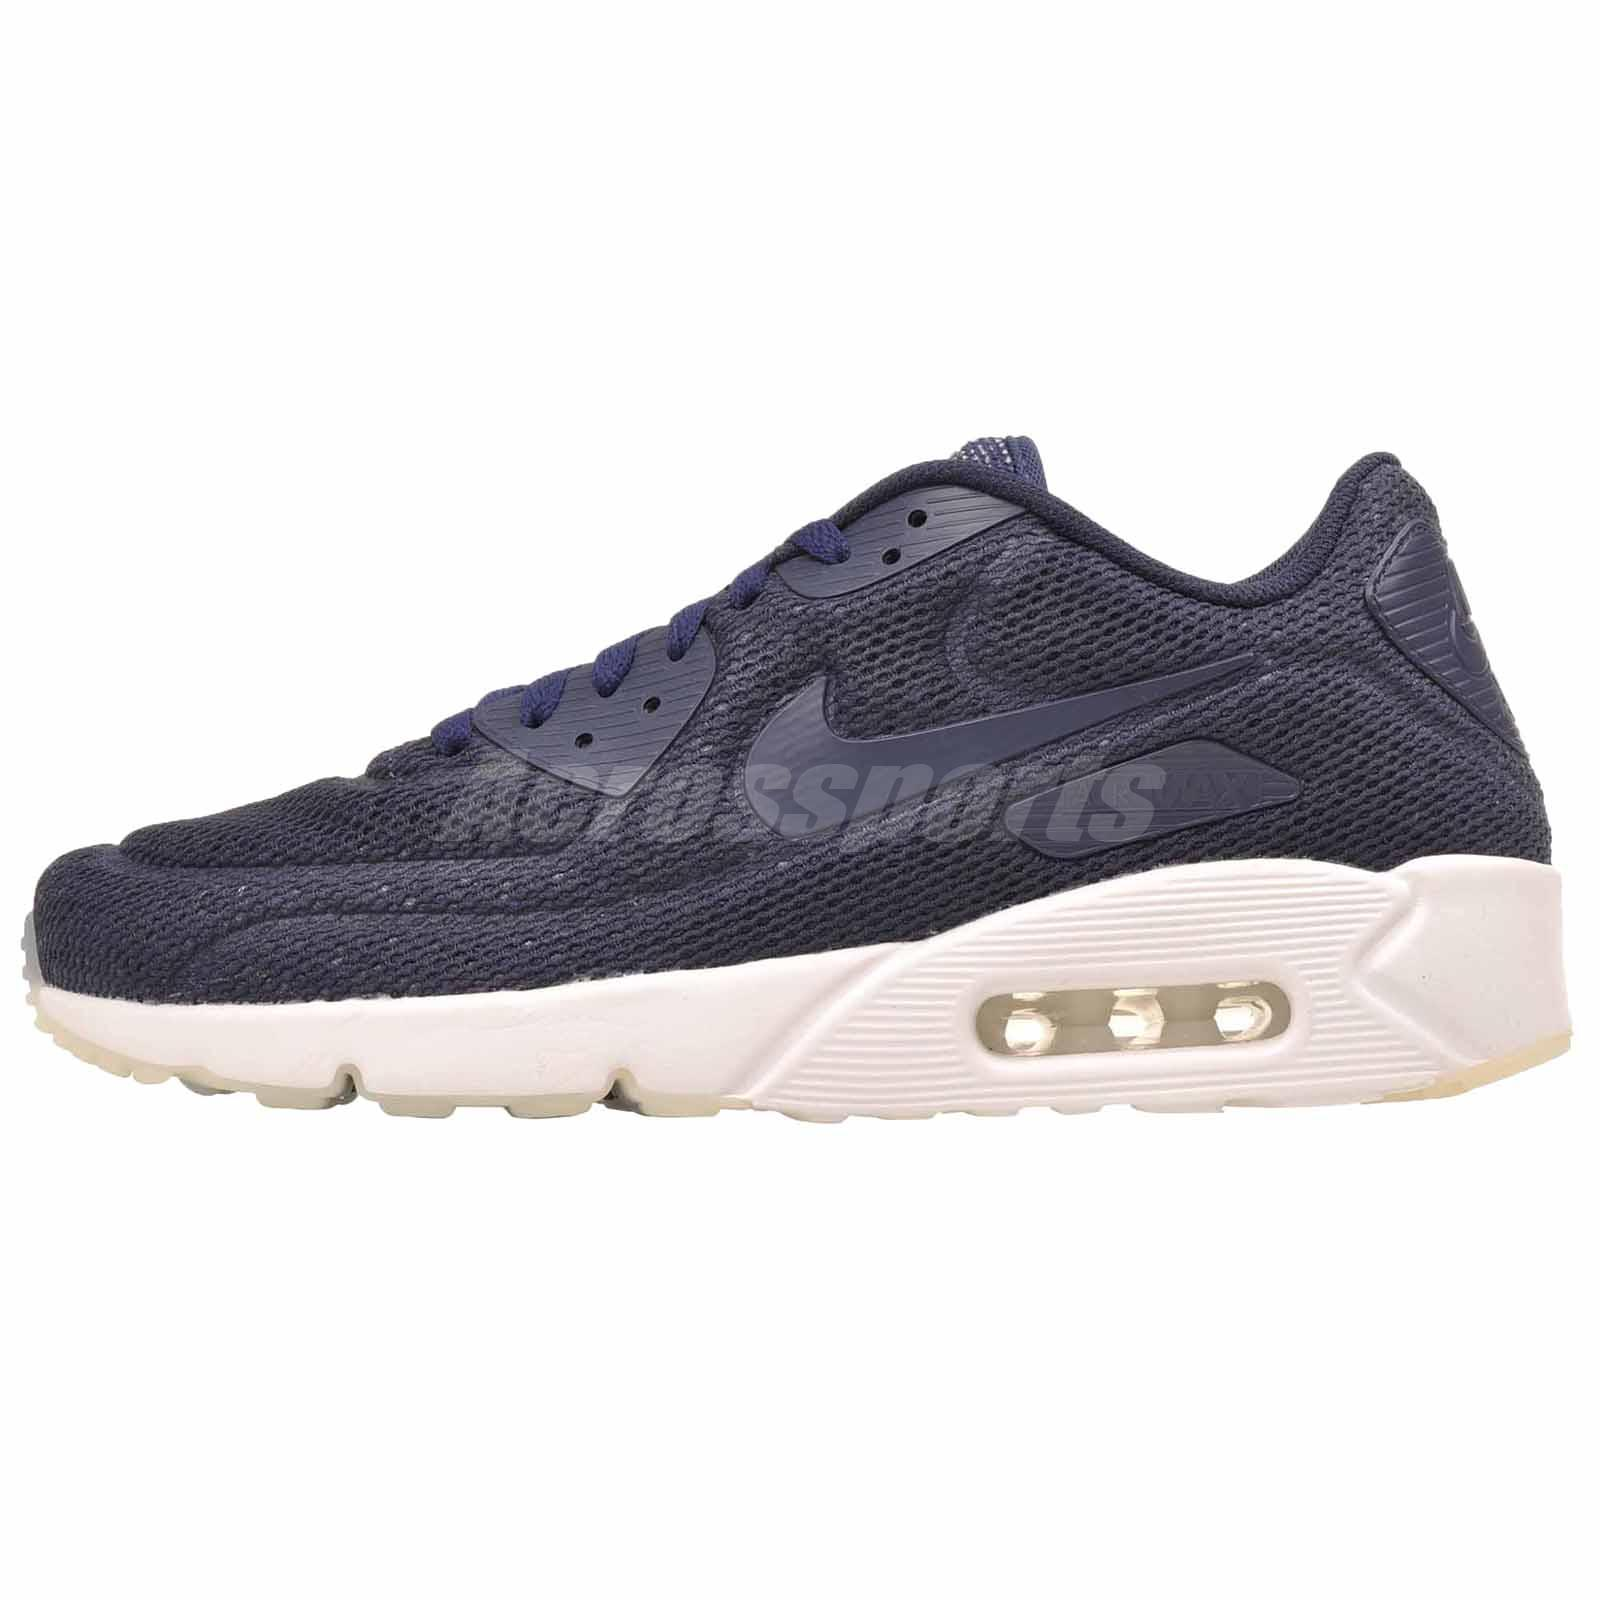 competitive price 143ba 48006 Details about Nike Air Max 90 Ultra 2.0 BR Running Shoes NWOB Mens Navy  Blue 898010-400